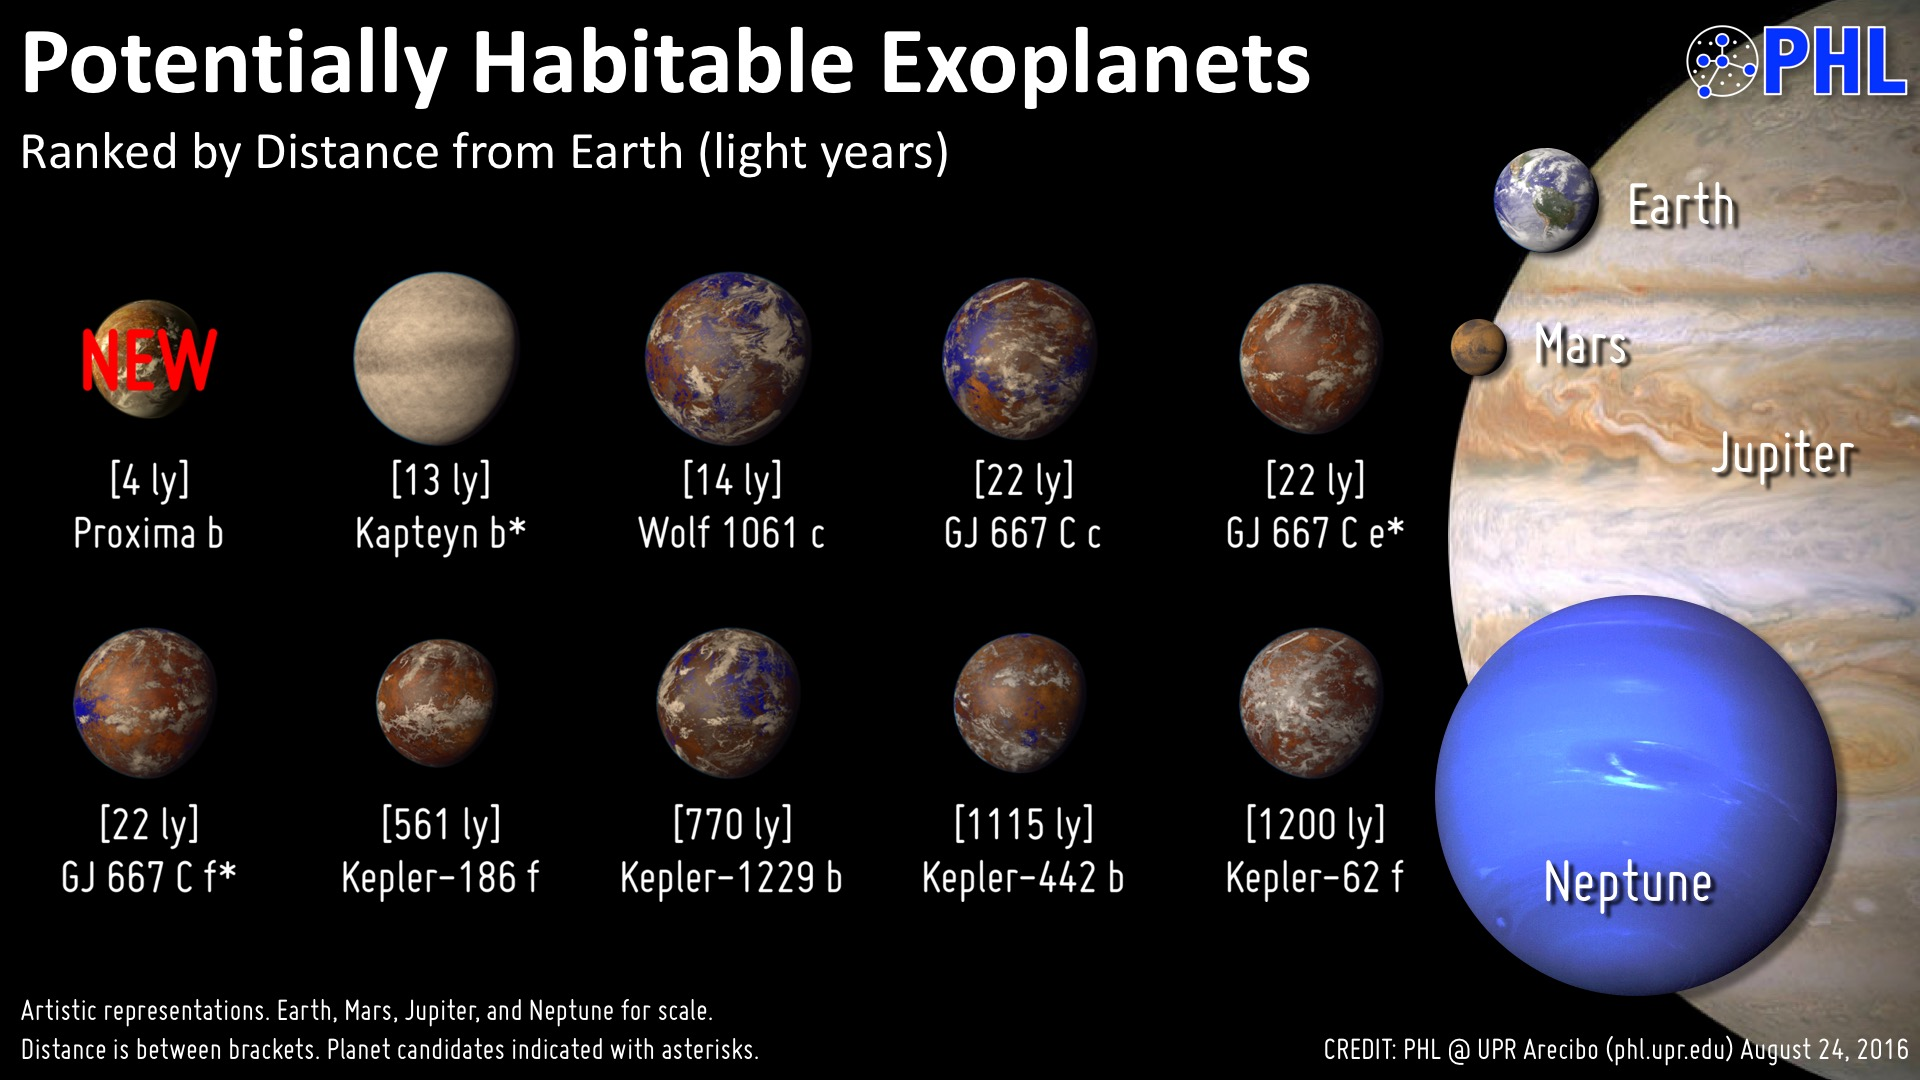 A Potentially Habitable World in Our Nearest Star ...